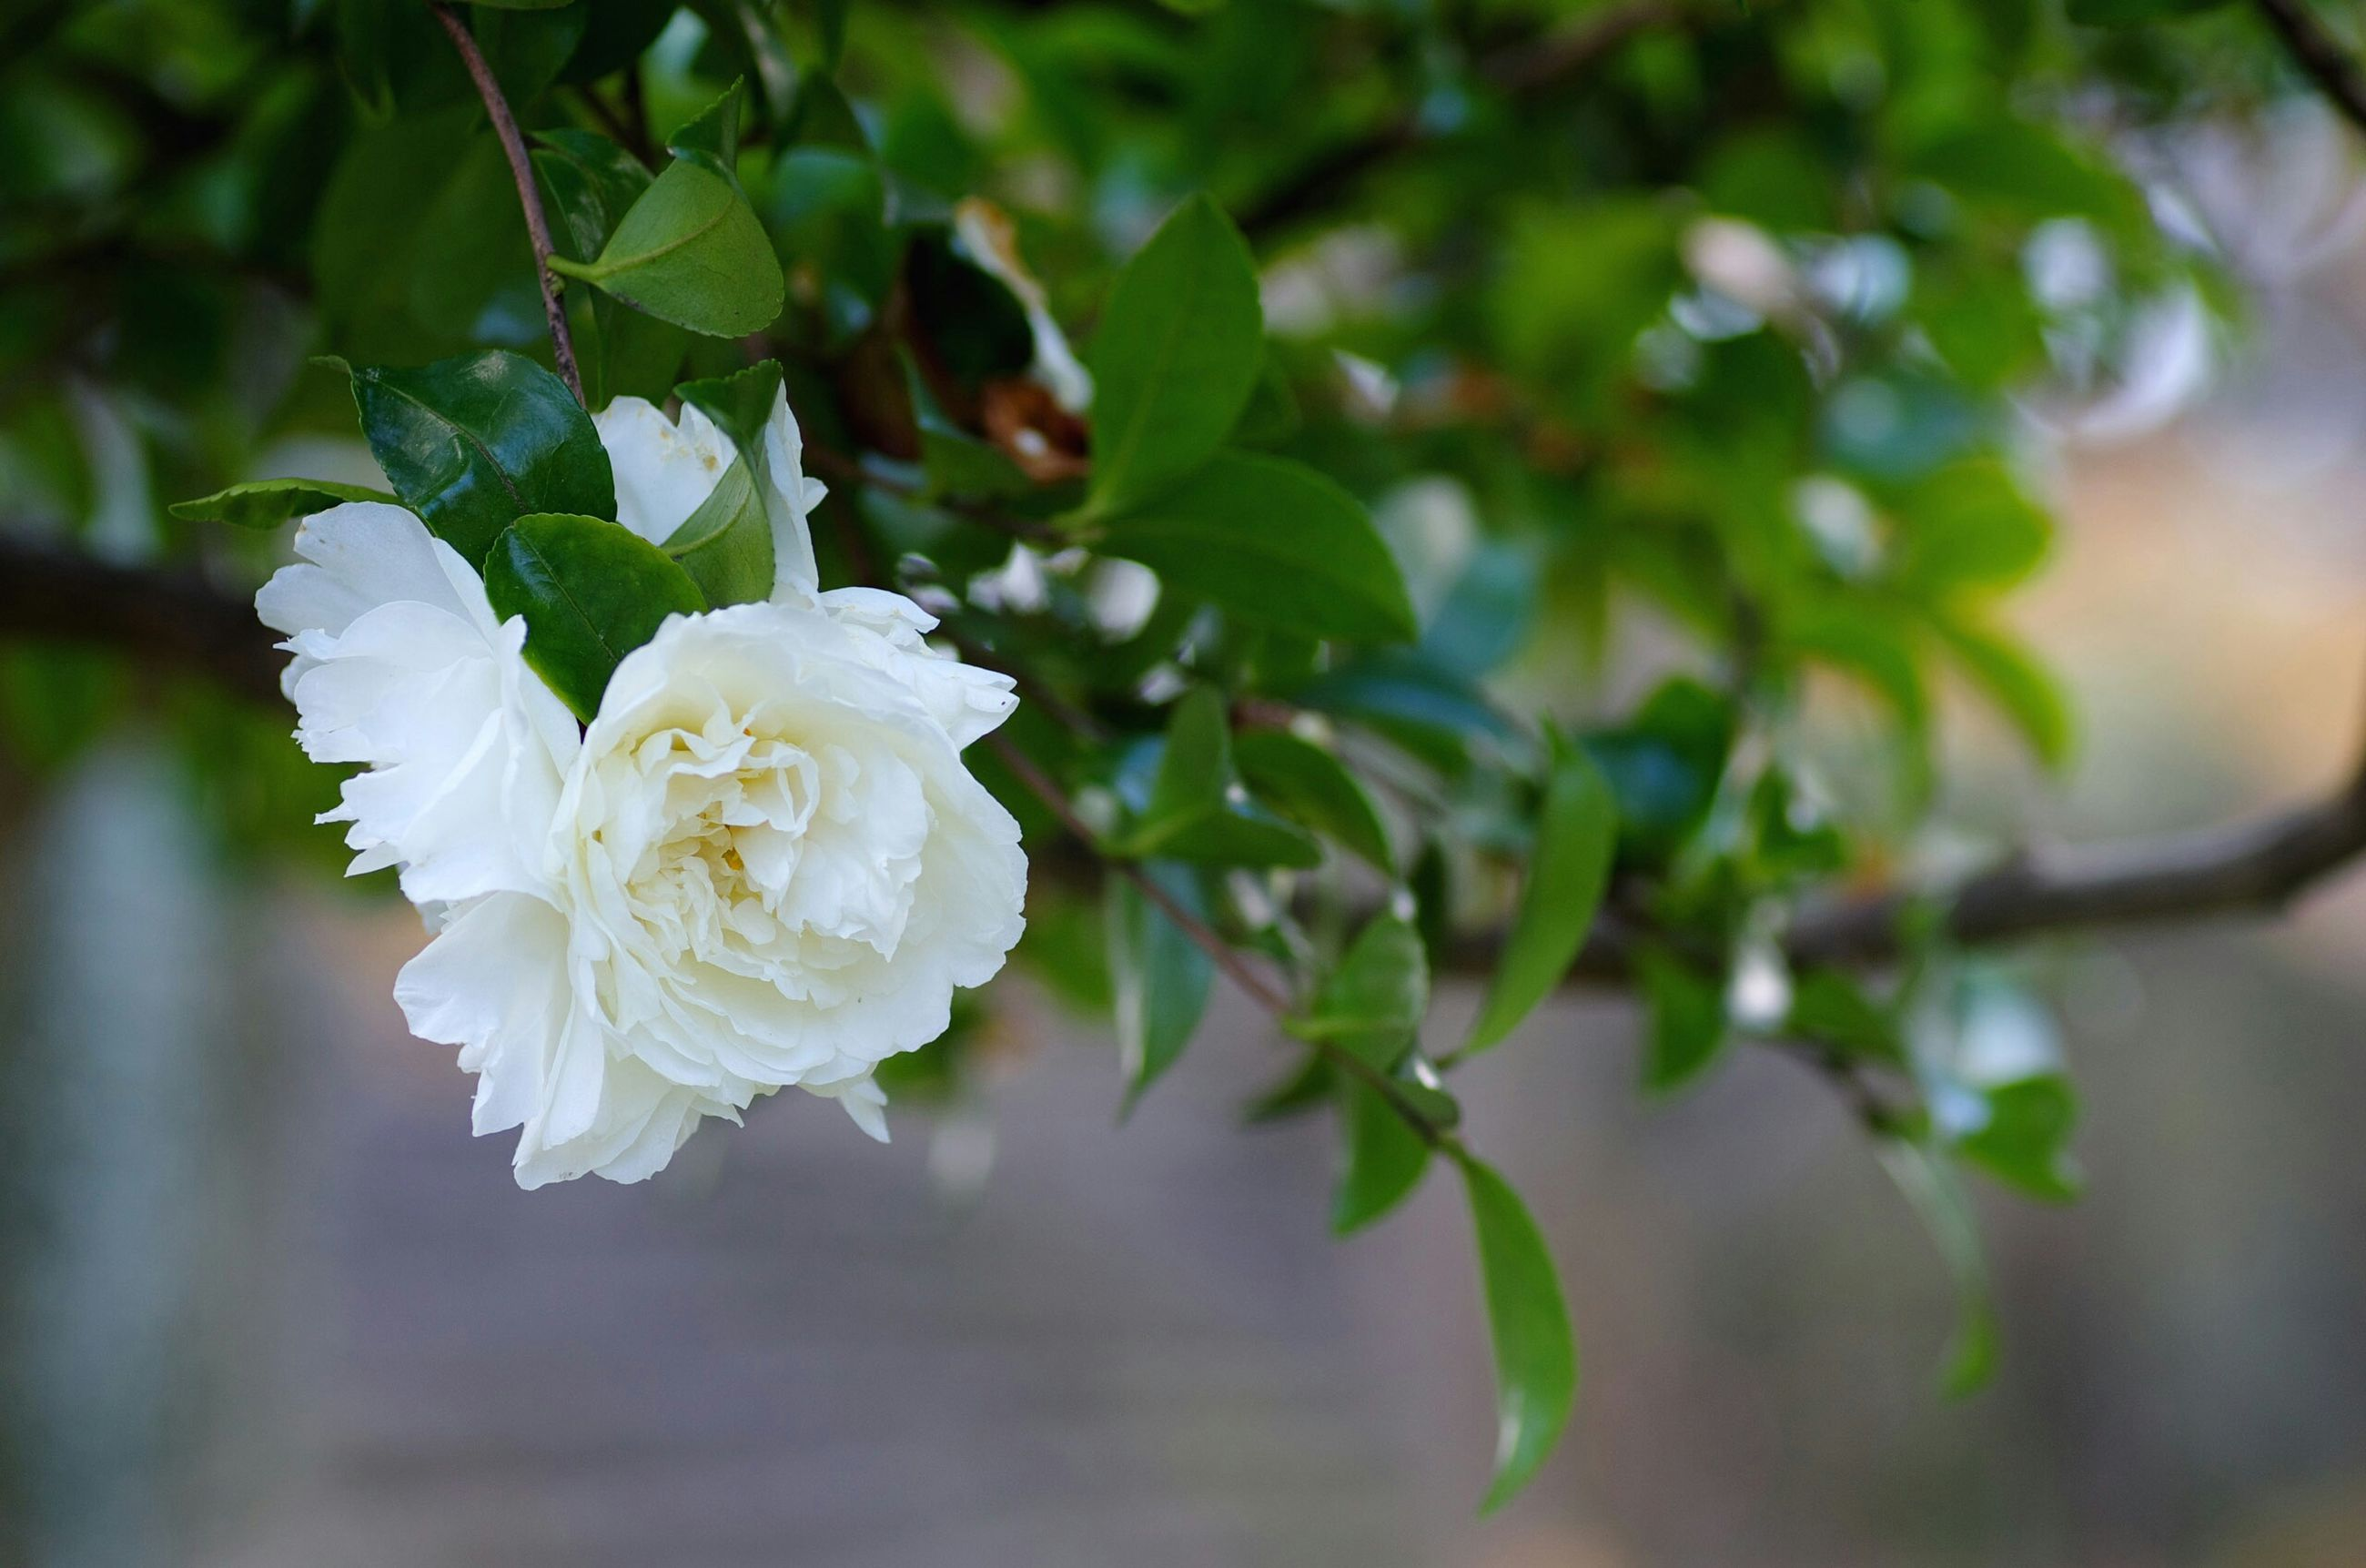 flower, freshness, growth, petal, fragility, white color, focus on foreground, close-up, beauty in nature, flower head, nature, blooming, plant, branch, leaf, blossom, bud, park - man made space, in bloom, tree